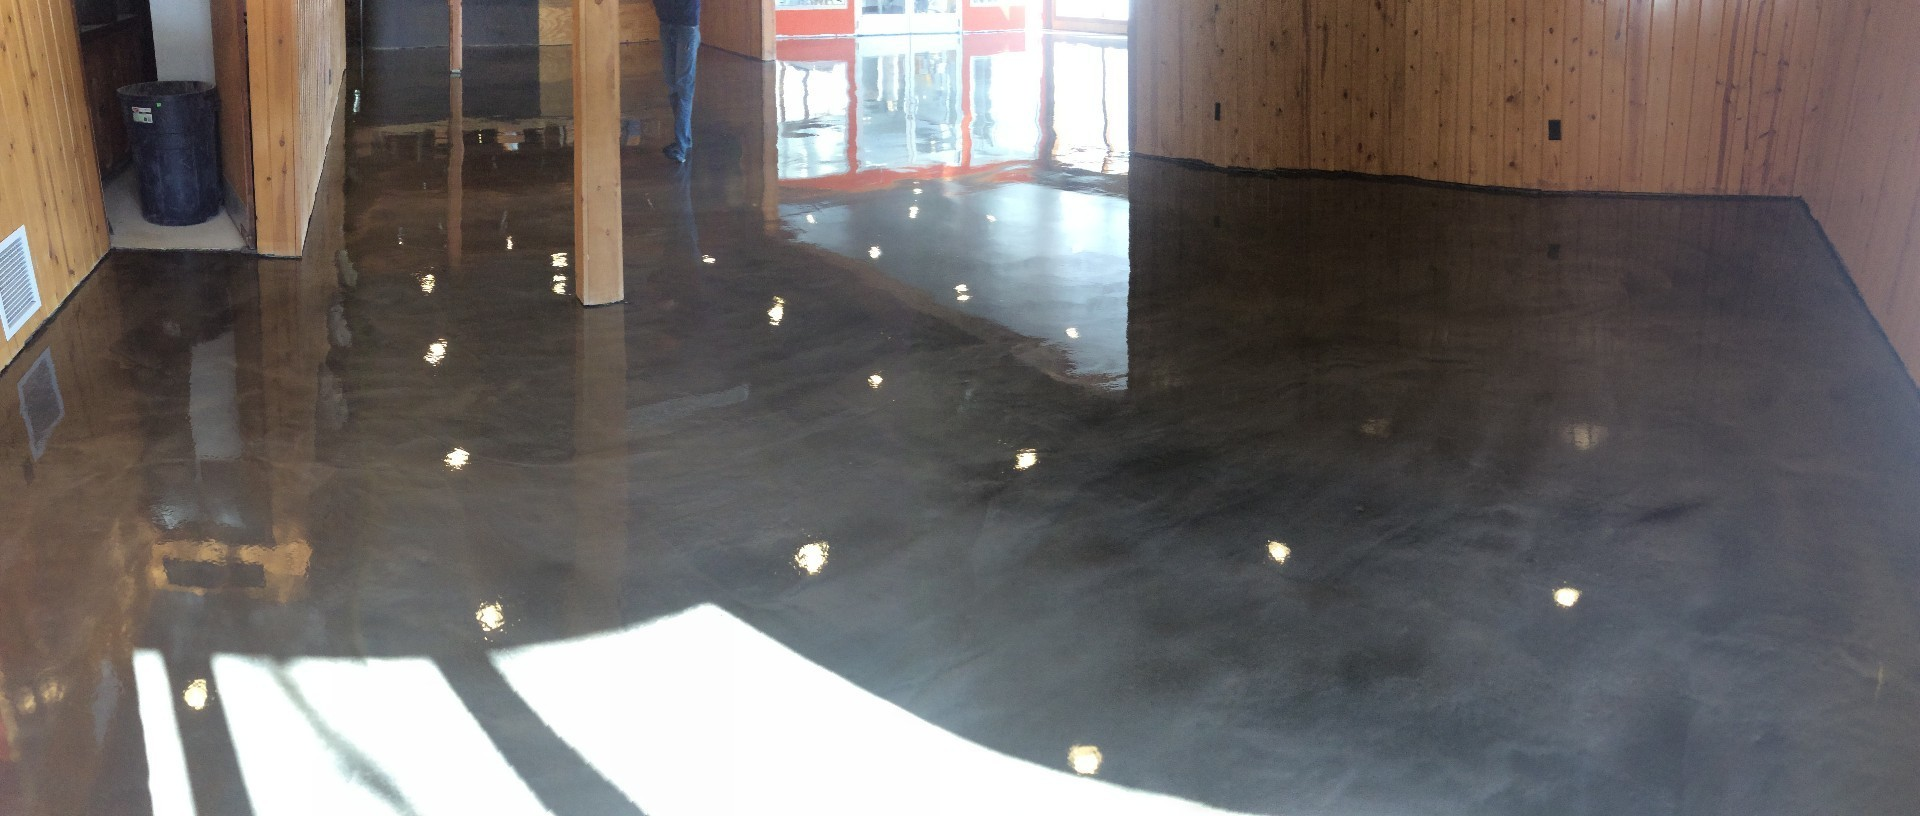 Polished Concrete Gallery Northwest Decorative Concrete